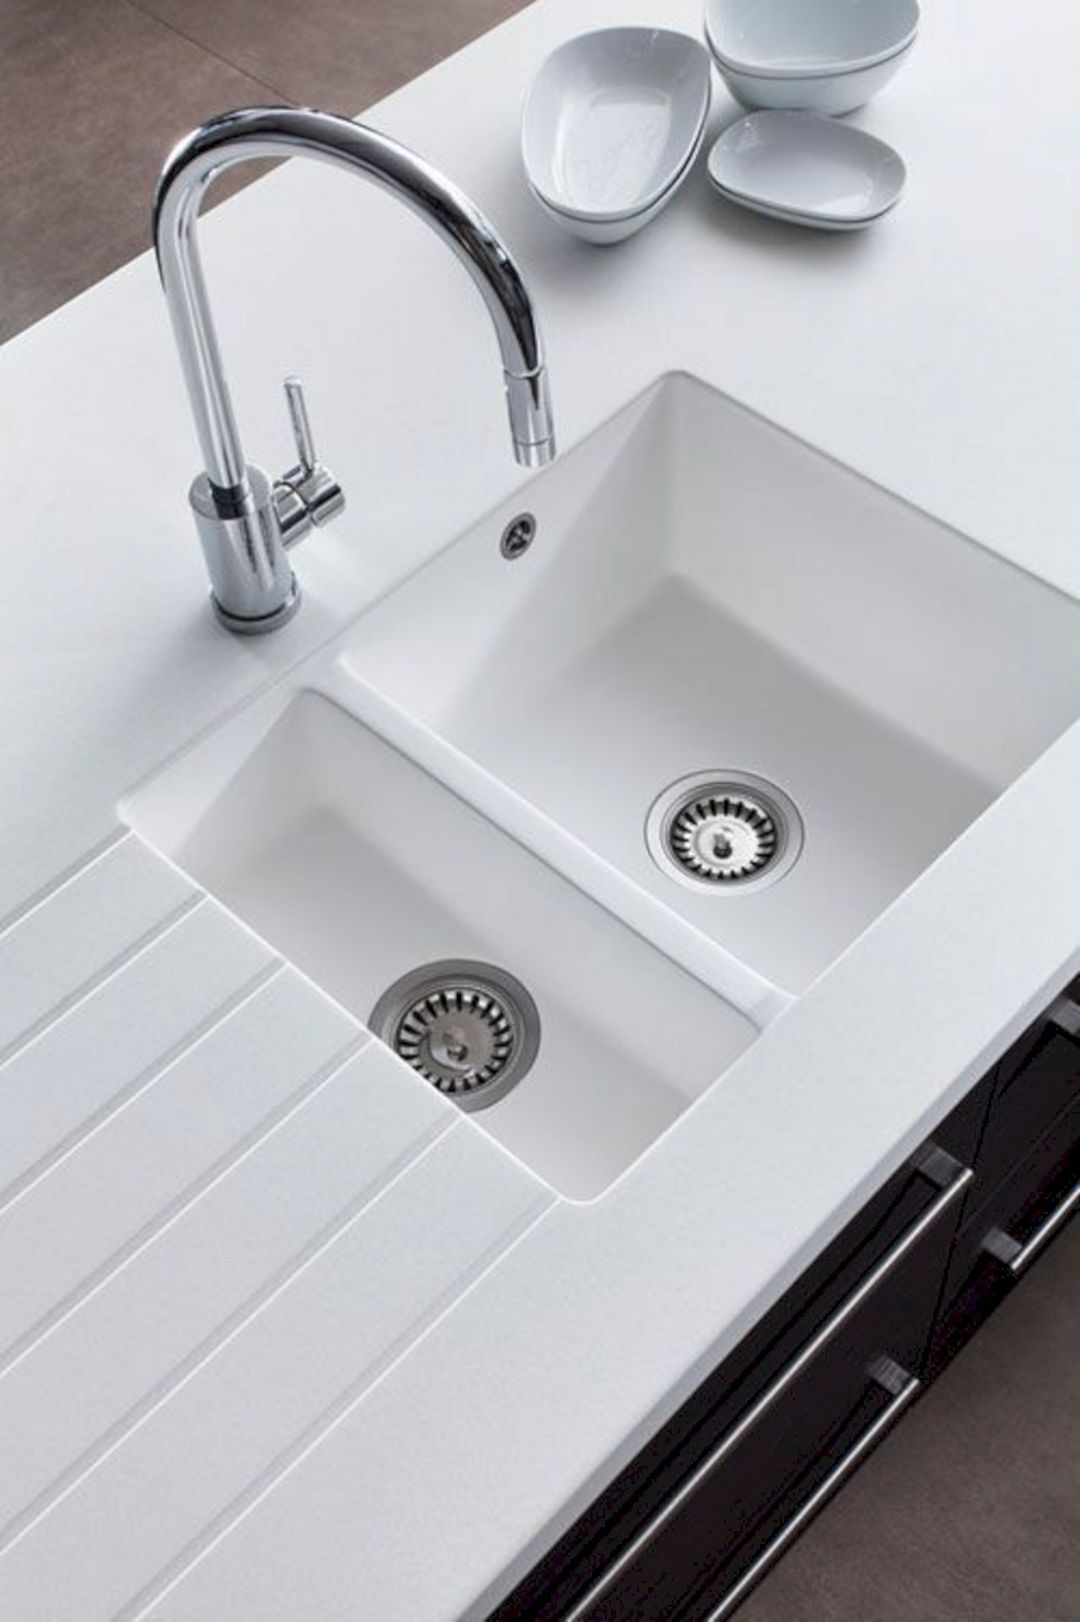 20 Best Kitchen Sink Ideas For Awesome Tiny Home Decoration Best Kitchen Sinks Modern Kitchen Sinks Kitchen Sink Design